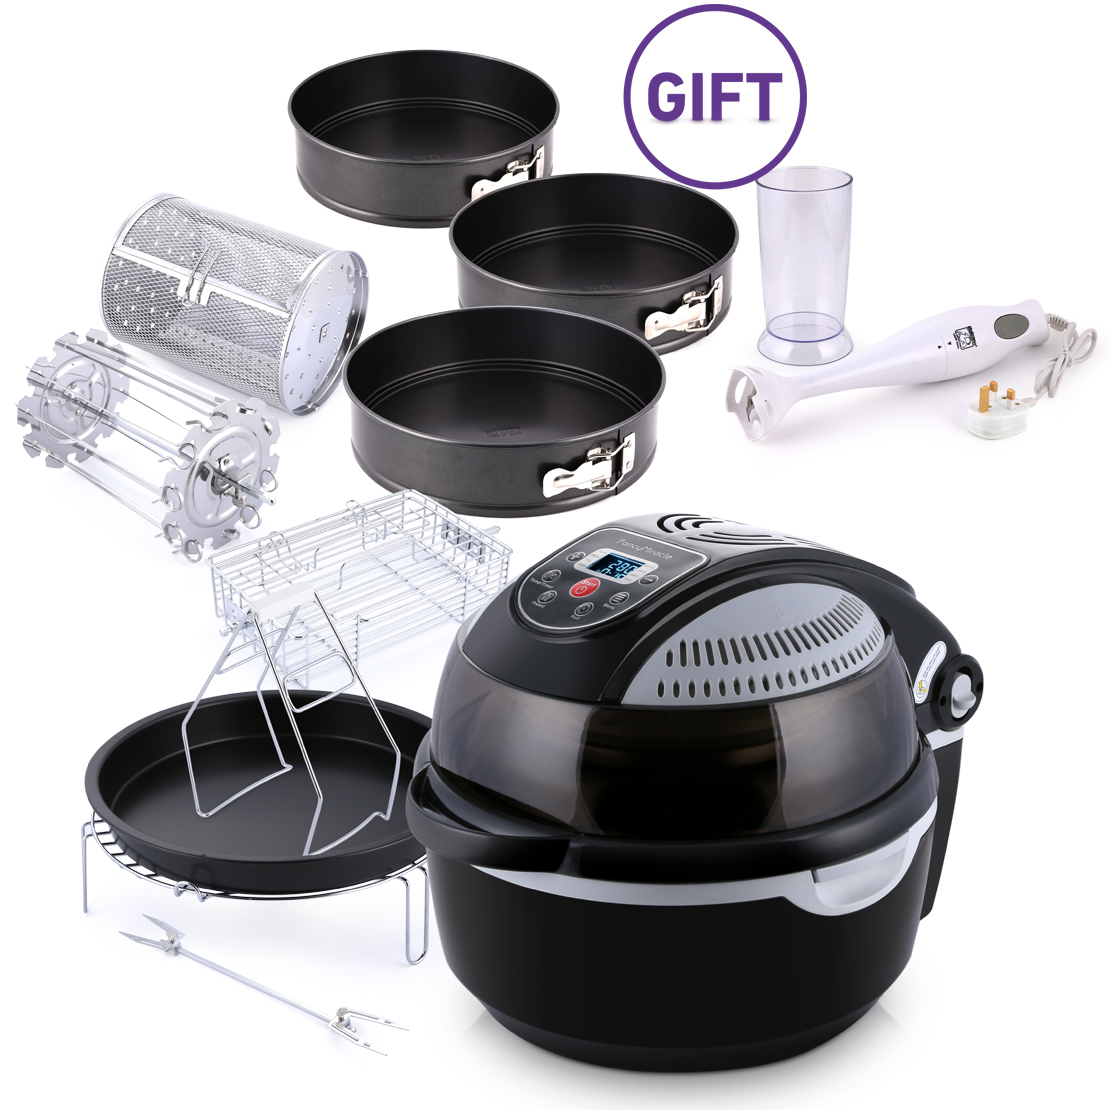 10 Liter Air Fryer RA001L - Black with Gifts